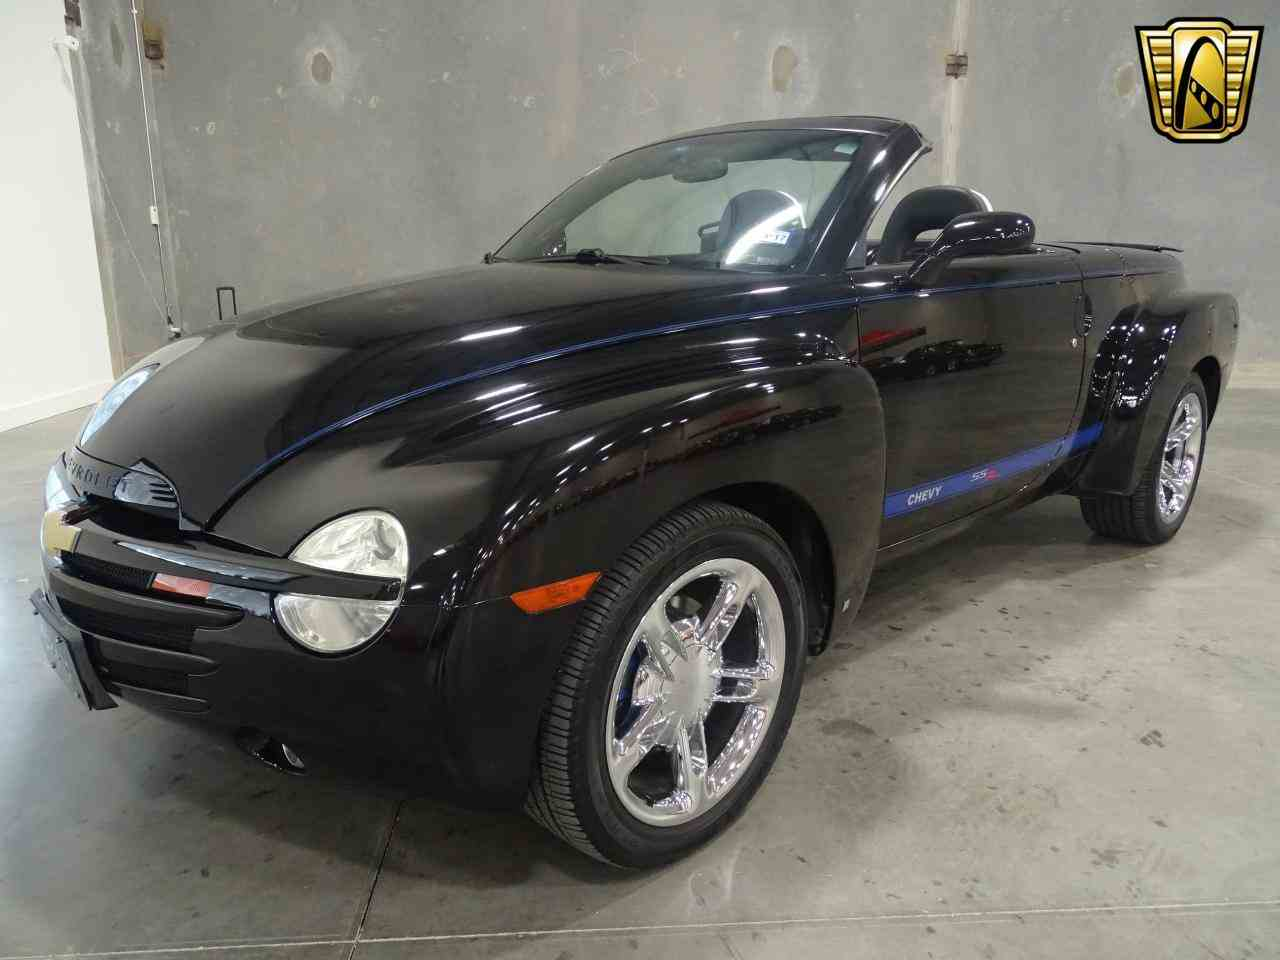 All Chevy 2006 chevrolet ssr for sale : 2006 Chevrolet SSR for Sale | ClassicCars.com | CC-952329